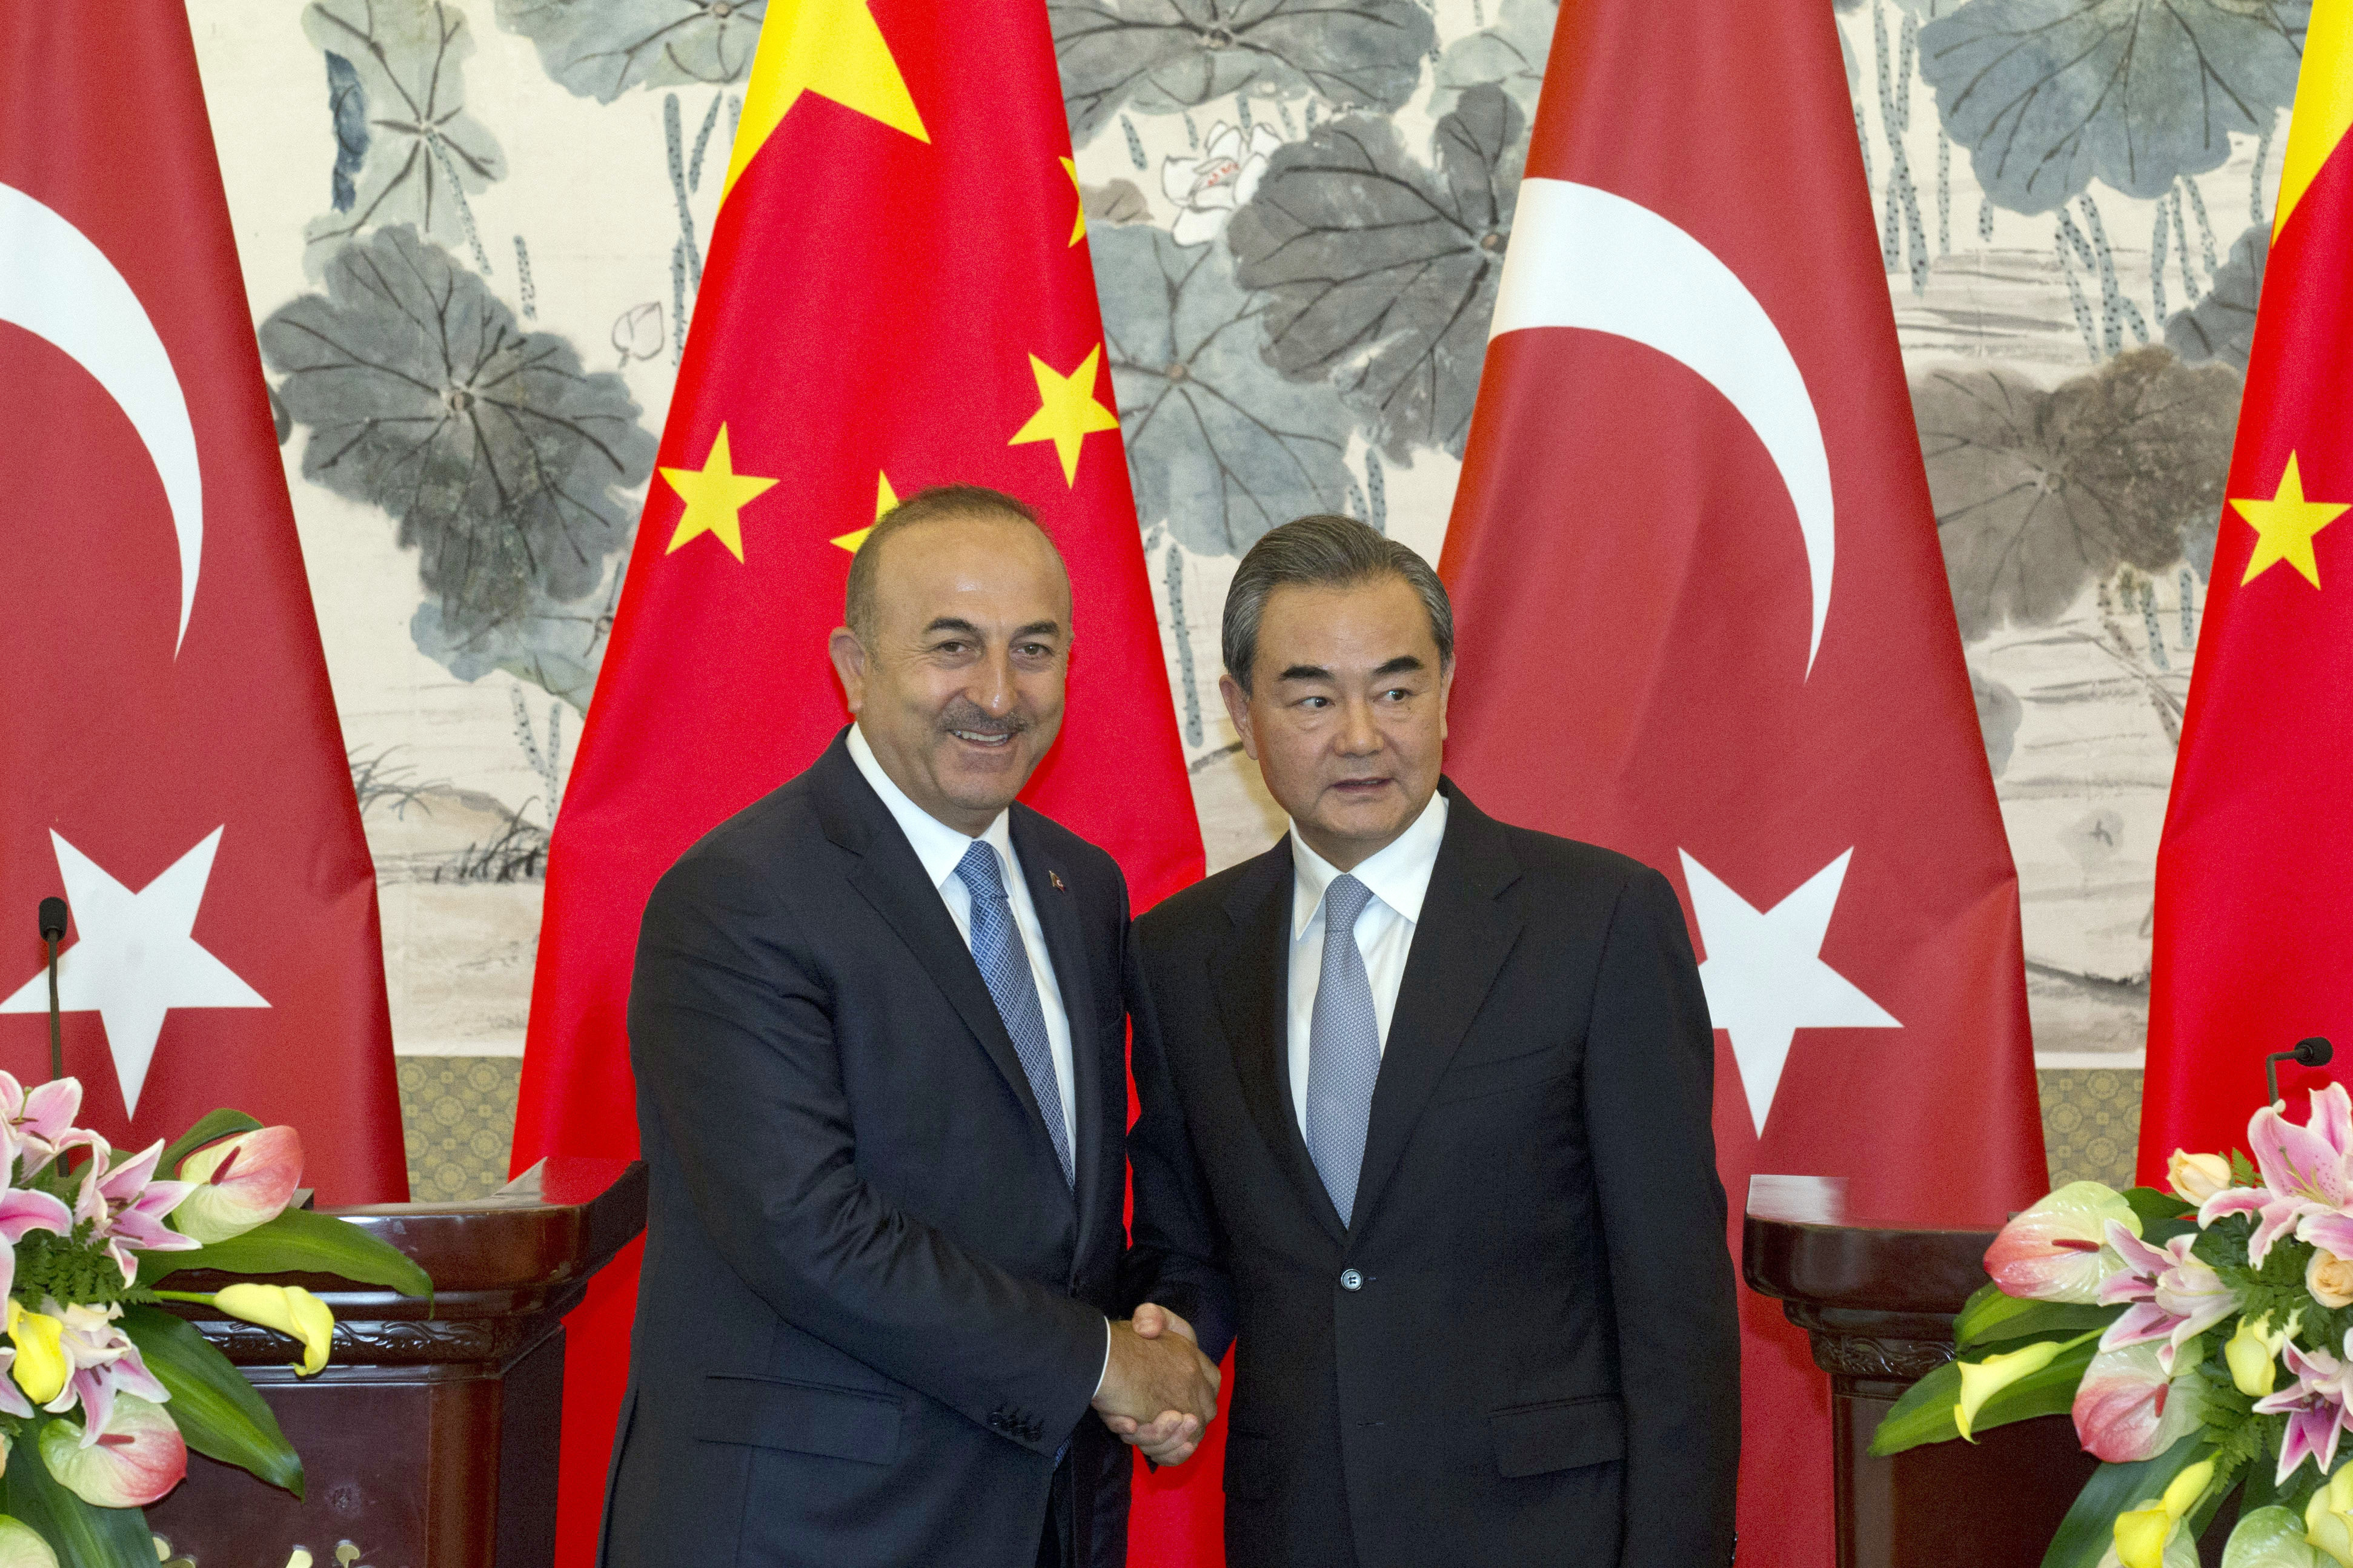 Chinese Censorship Hits the Middle East